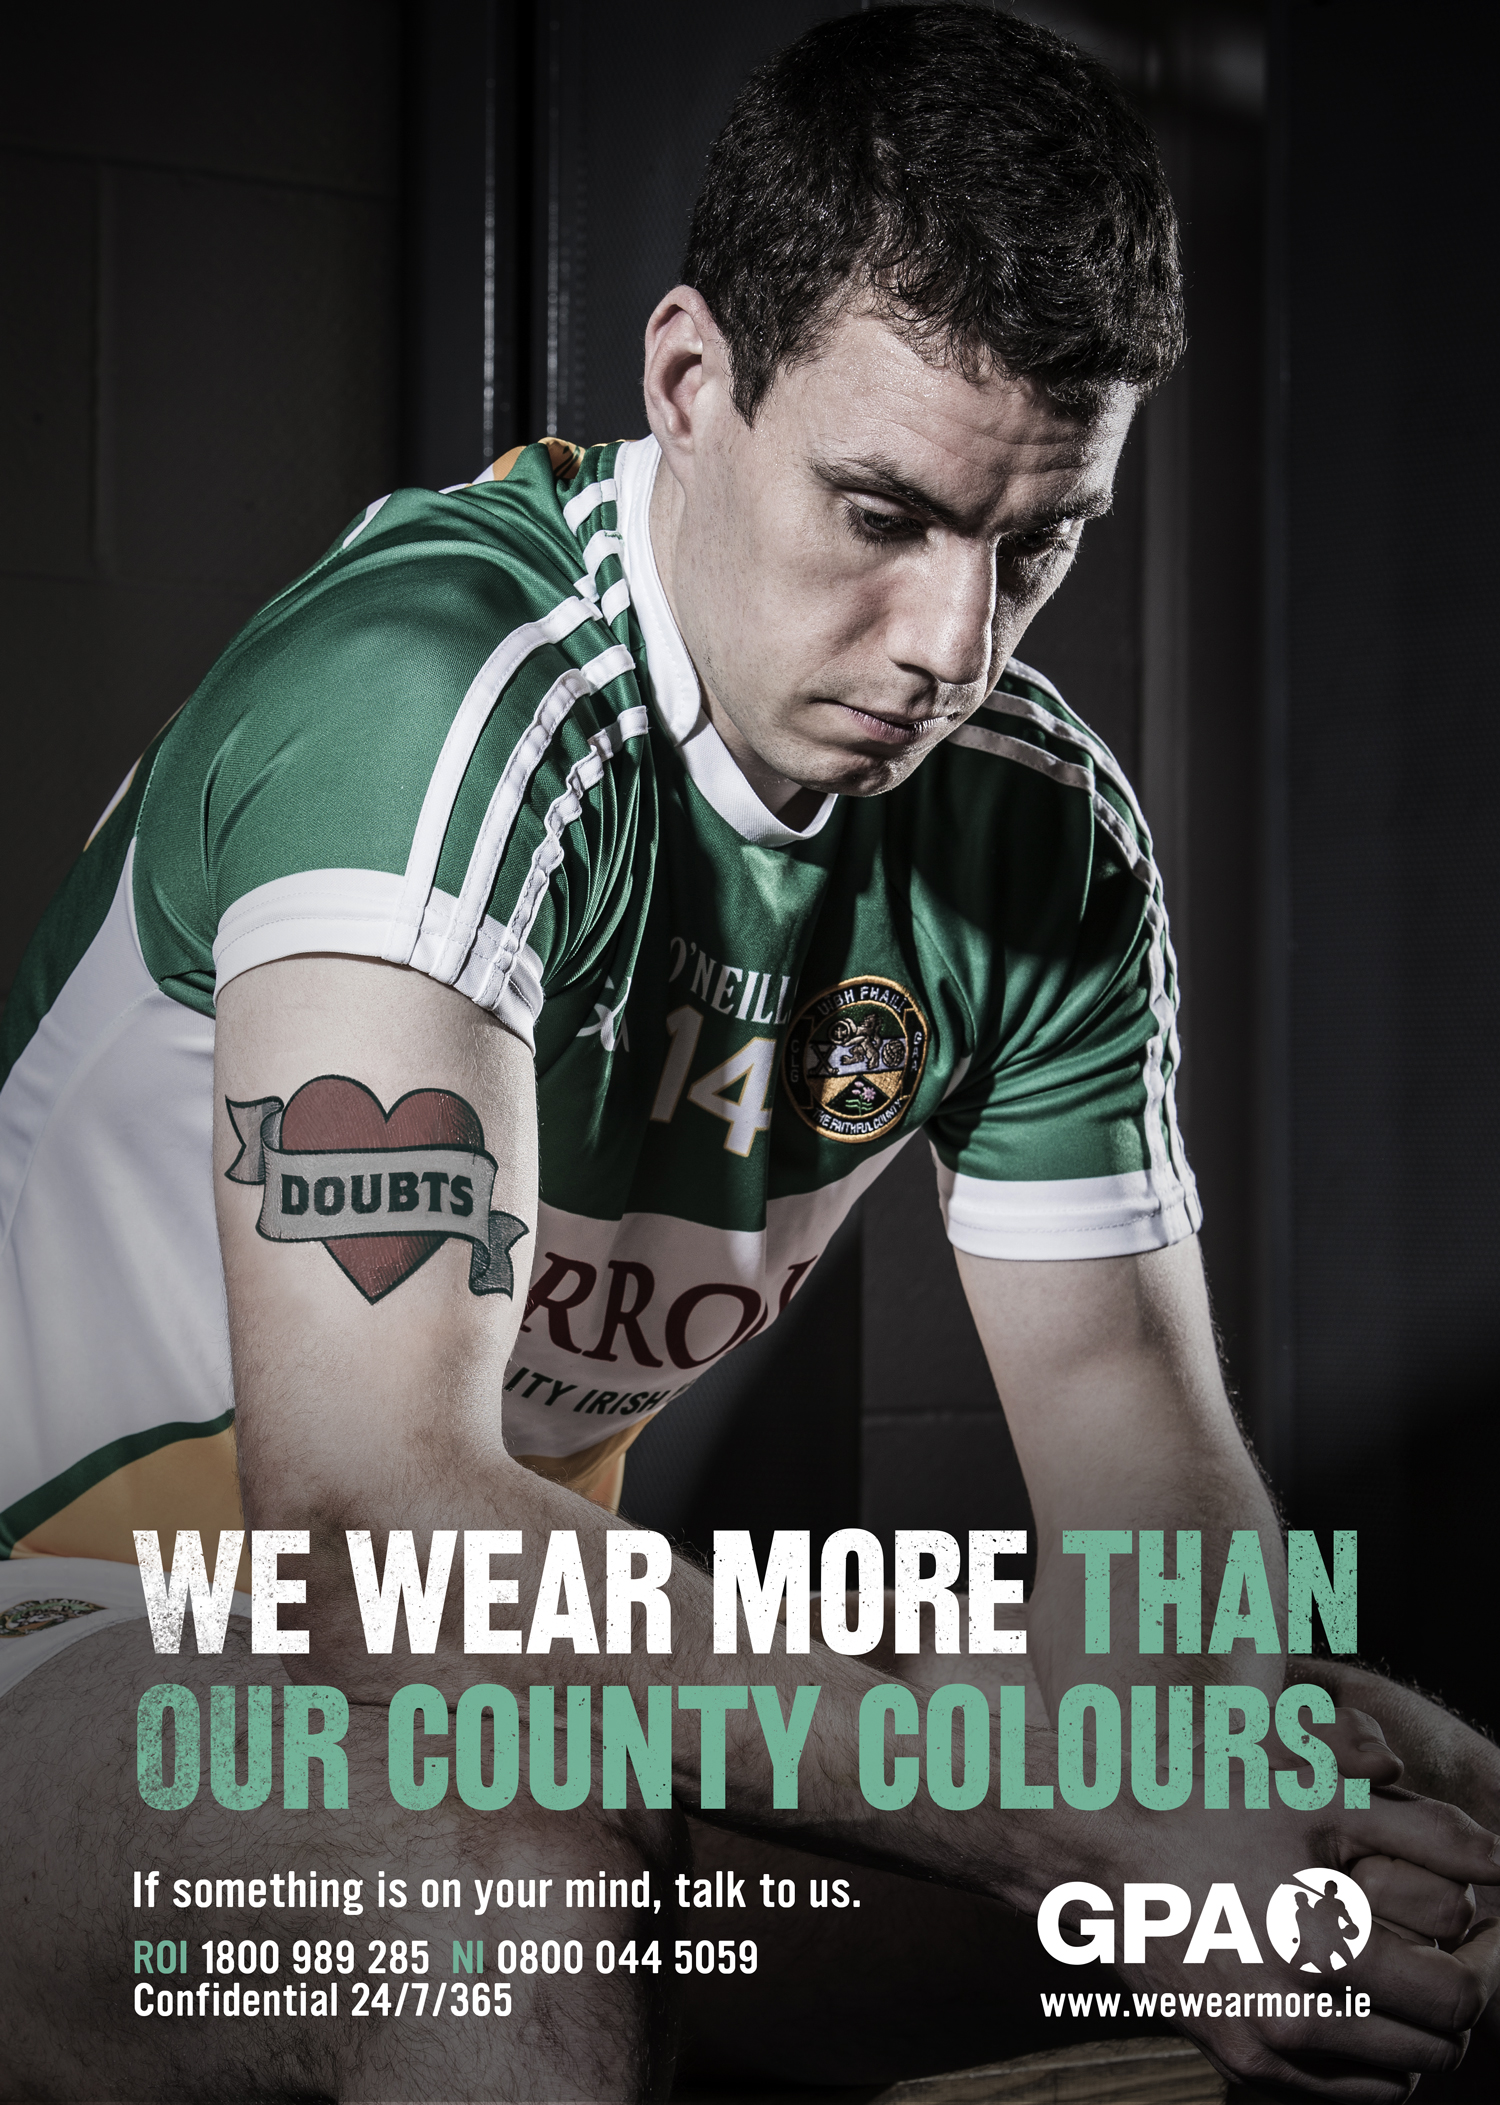 GPA_Poster_AW_Offaly.jpg